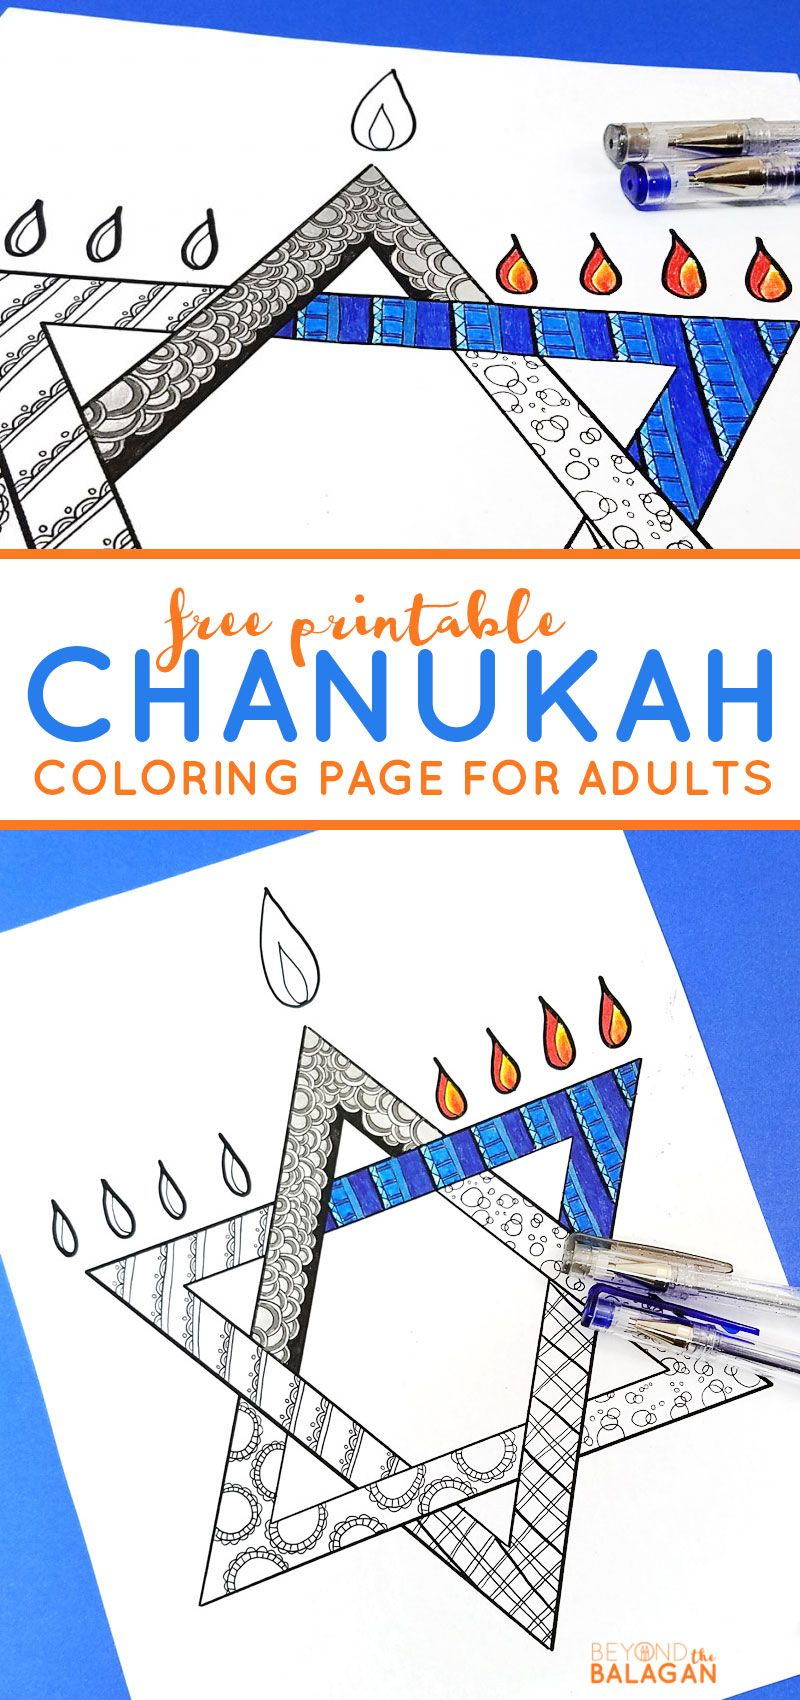 The Chanukah Coloring Page For Adults Is So Beautiful Grab Your Free Printable Hanukkah Coloring Page For Coloring Pages Hanukkah Crafts Free Coloring Pages [ 1700 x 800 Pixel ]